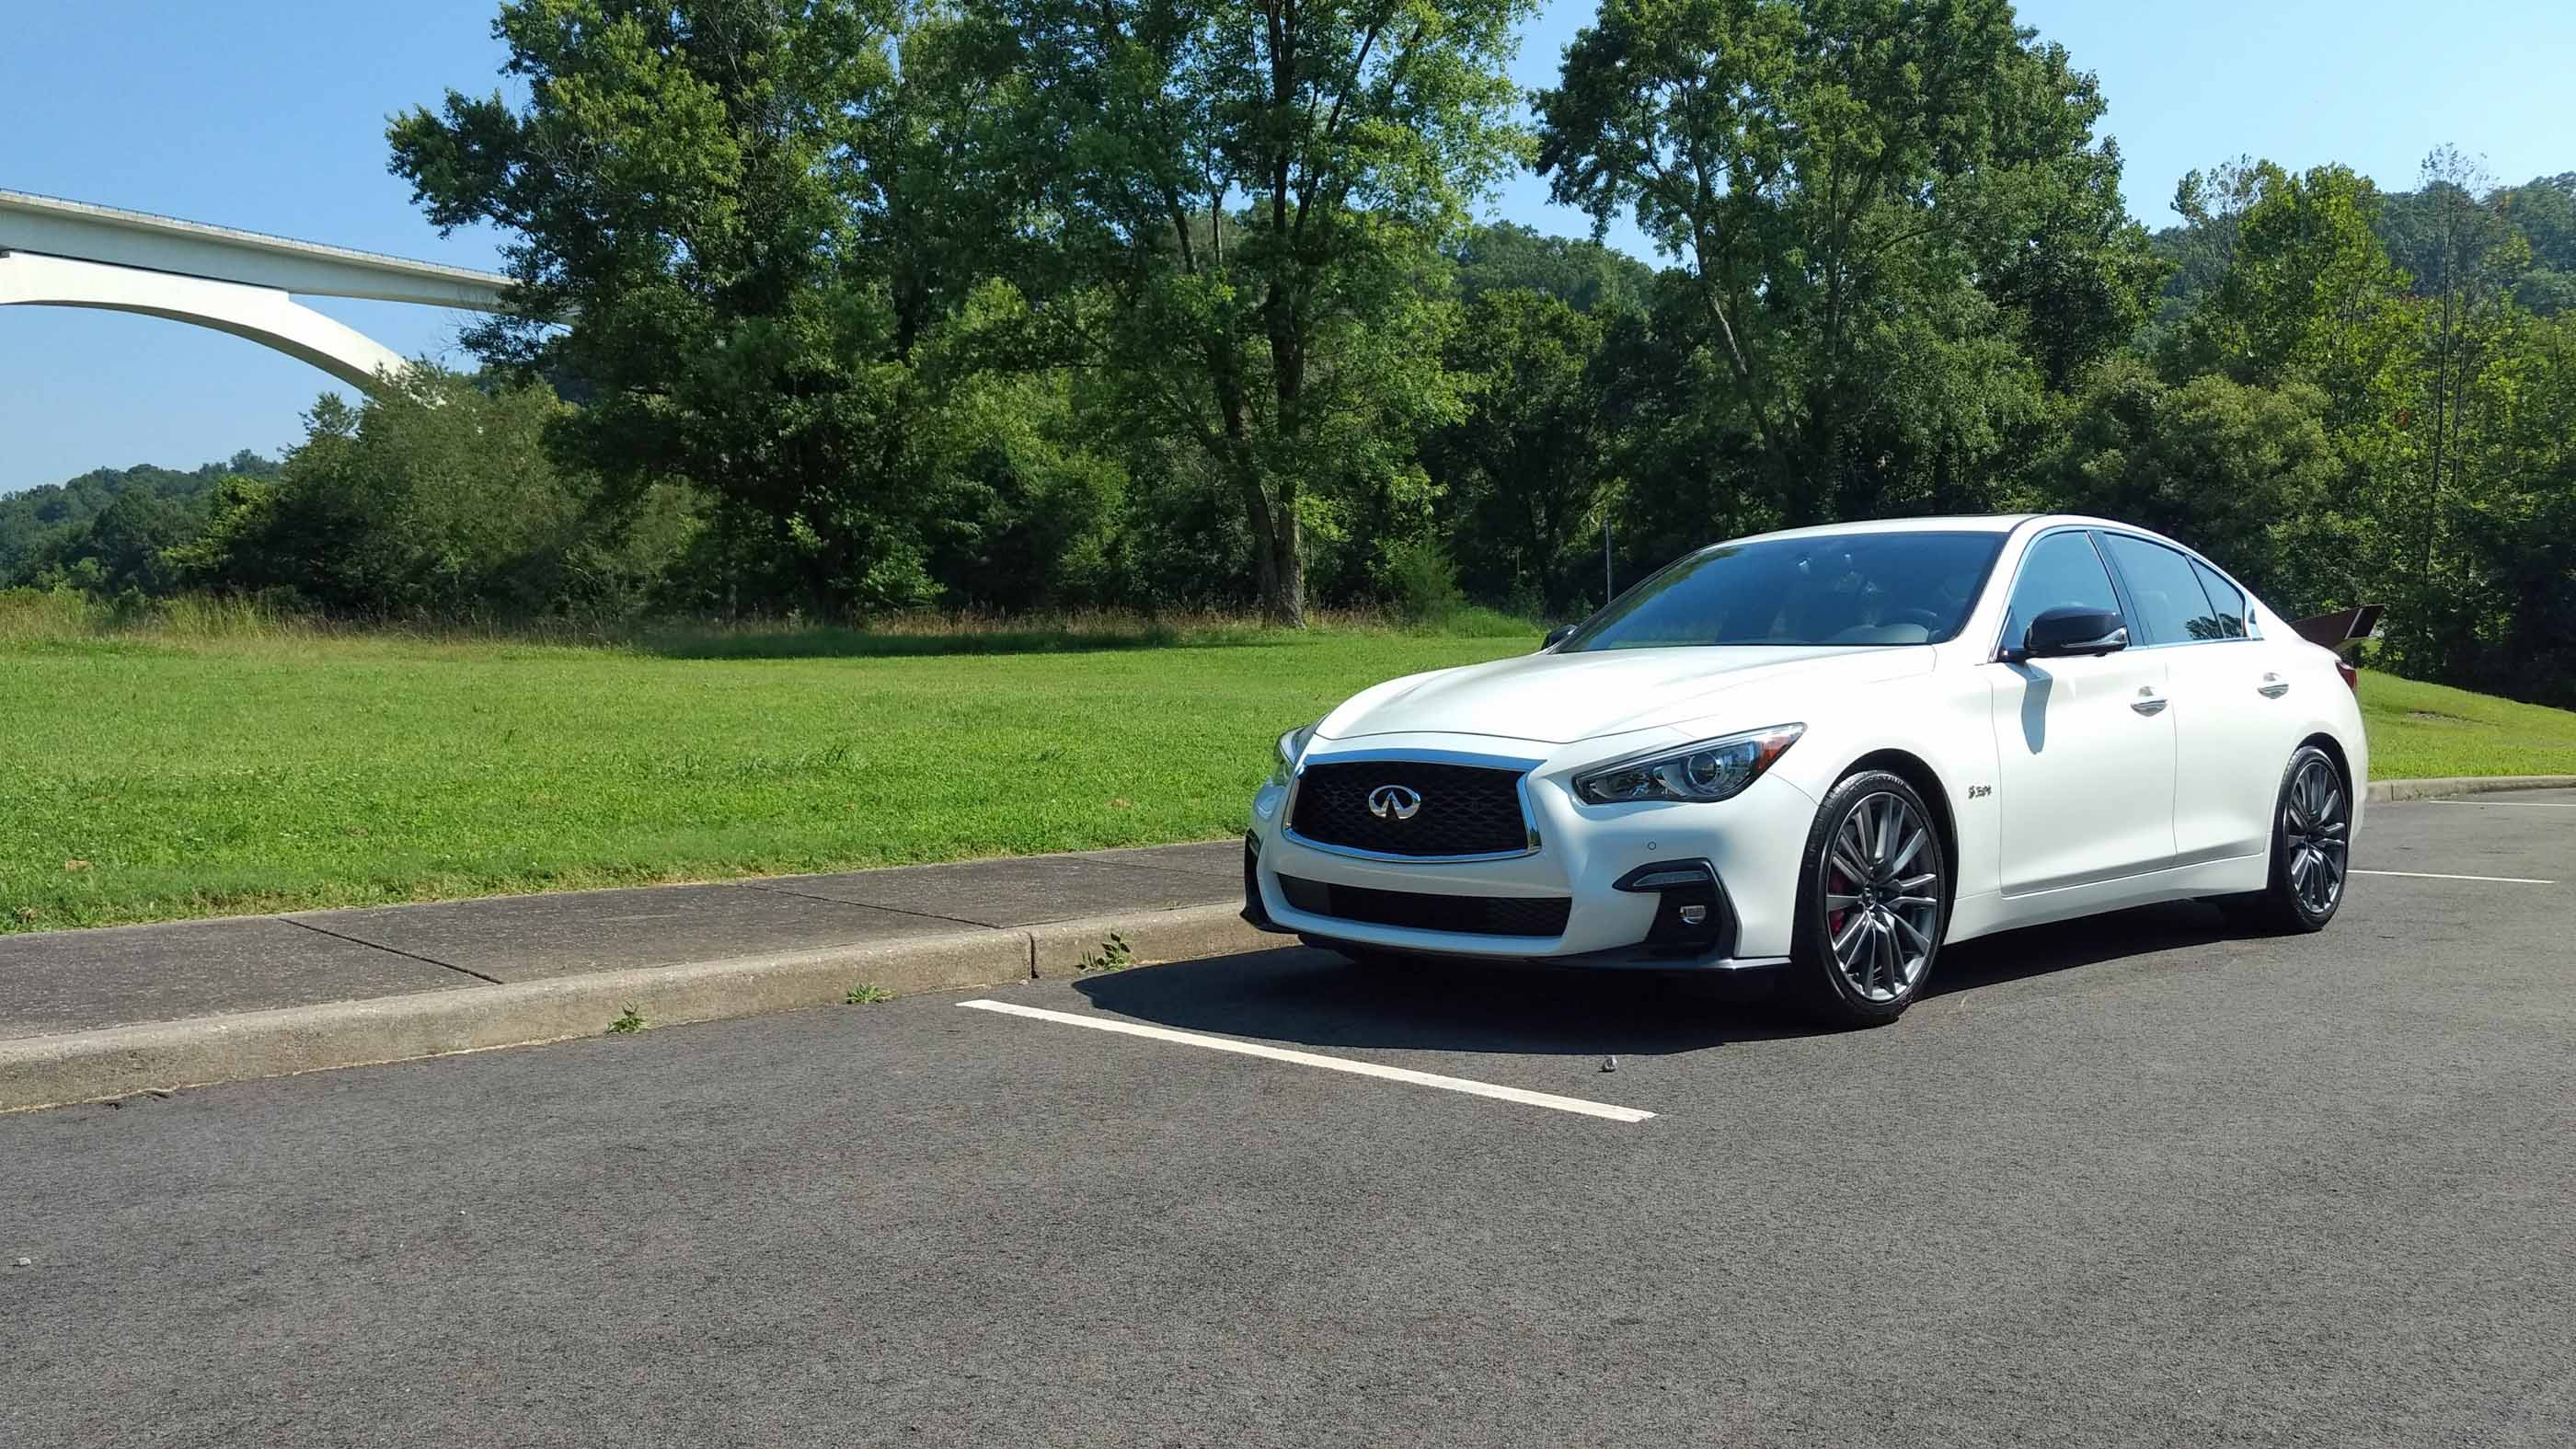 Lexus Is 350 2018 >> 2018 Infiniti Q50 Review - AutoGuide.com